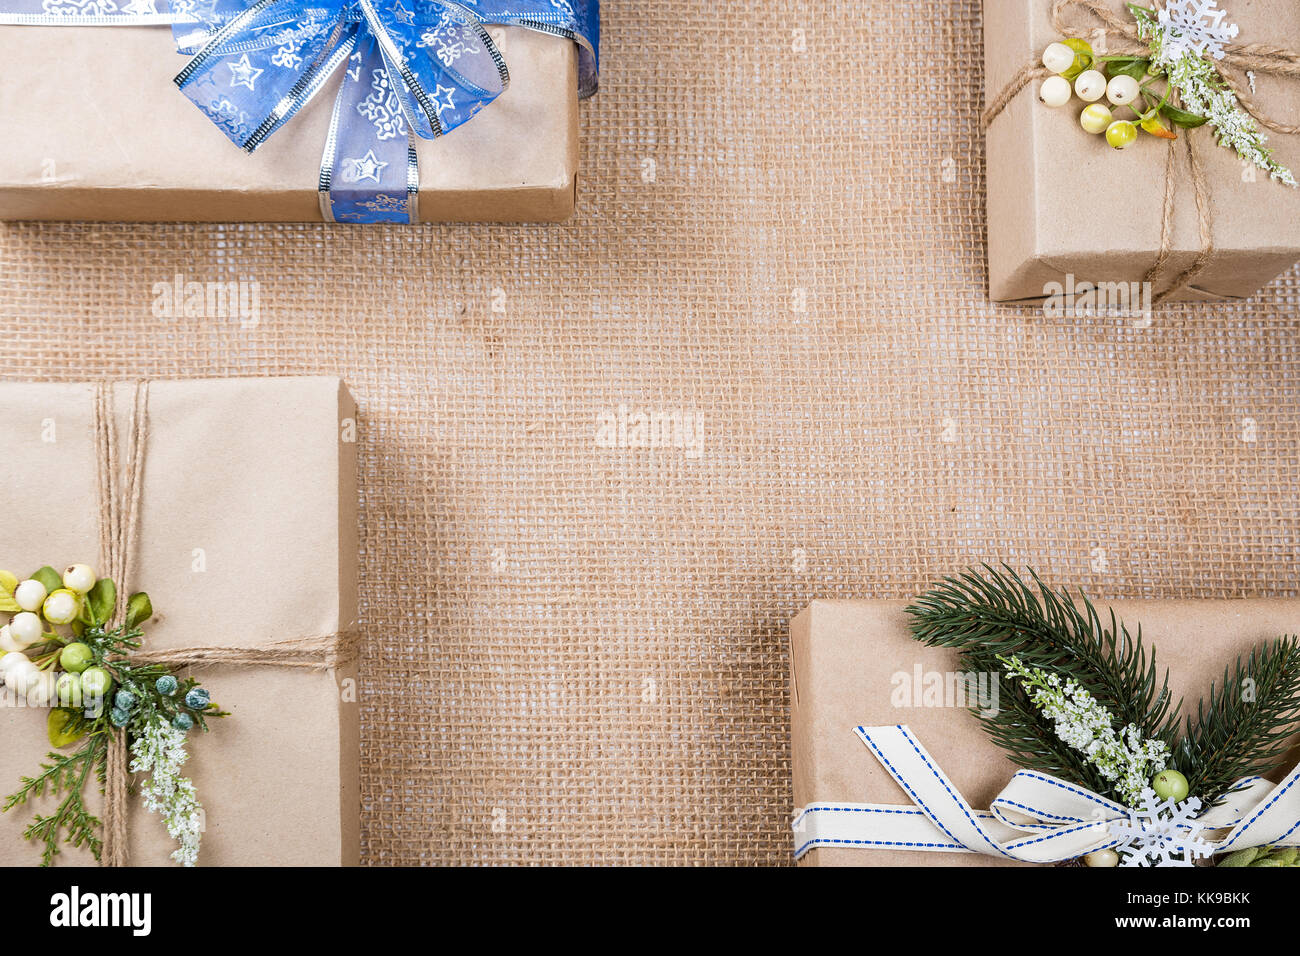 classy christmas gifts box presents in brown paper with bow and new year decor on burlap merry christmas card background